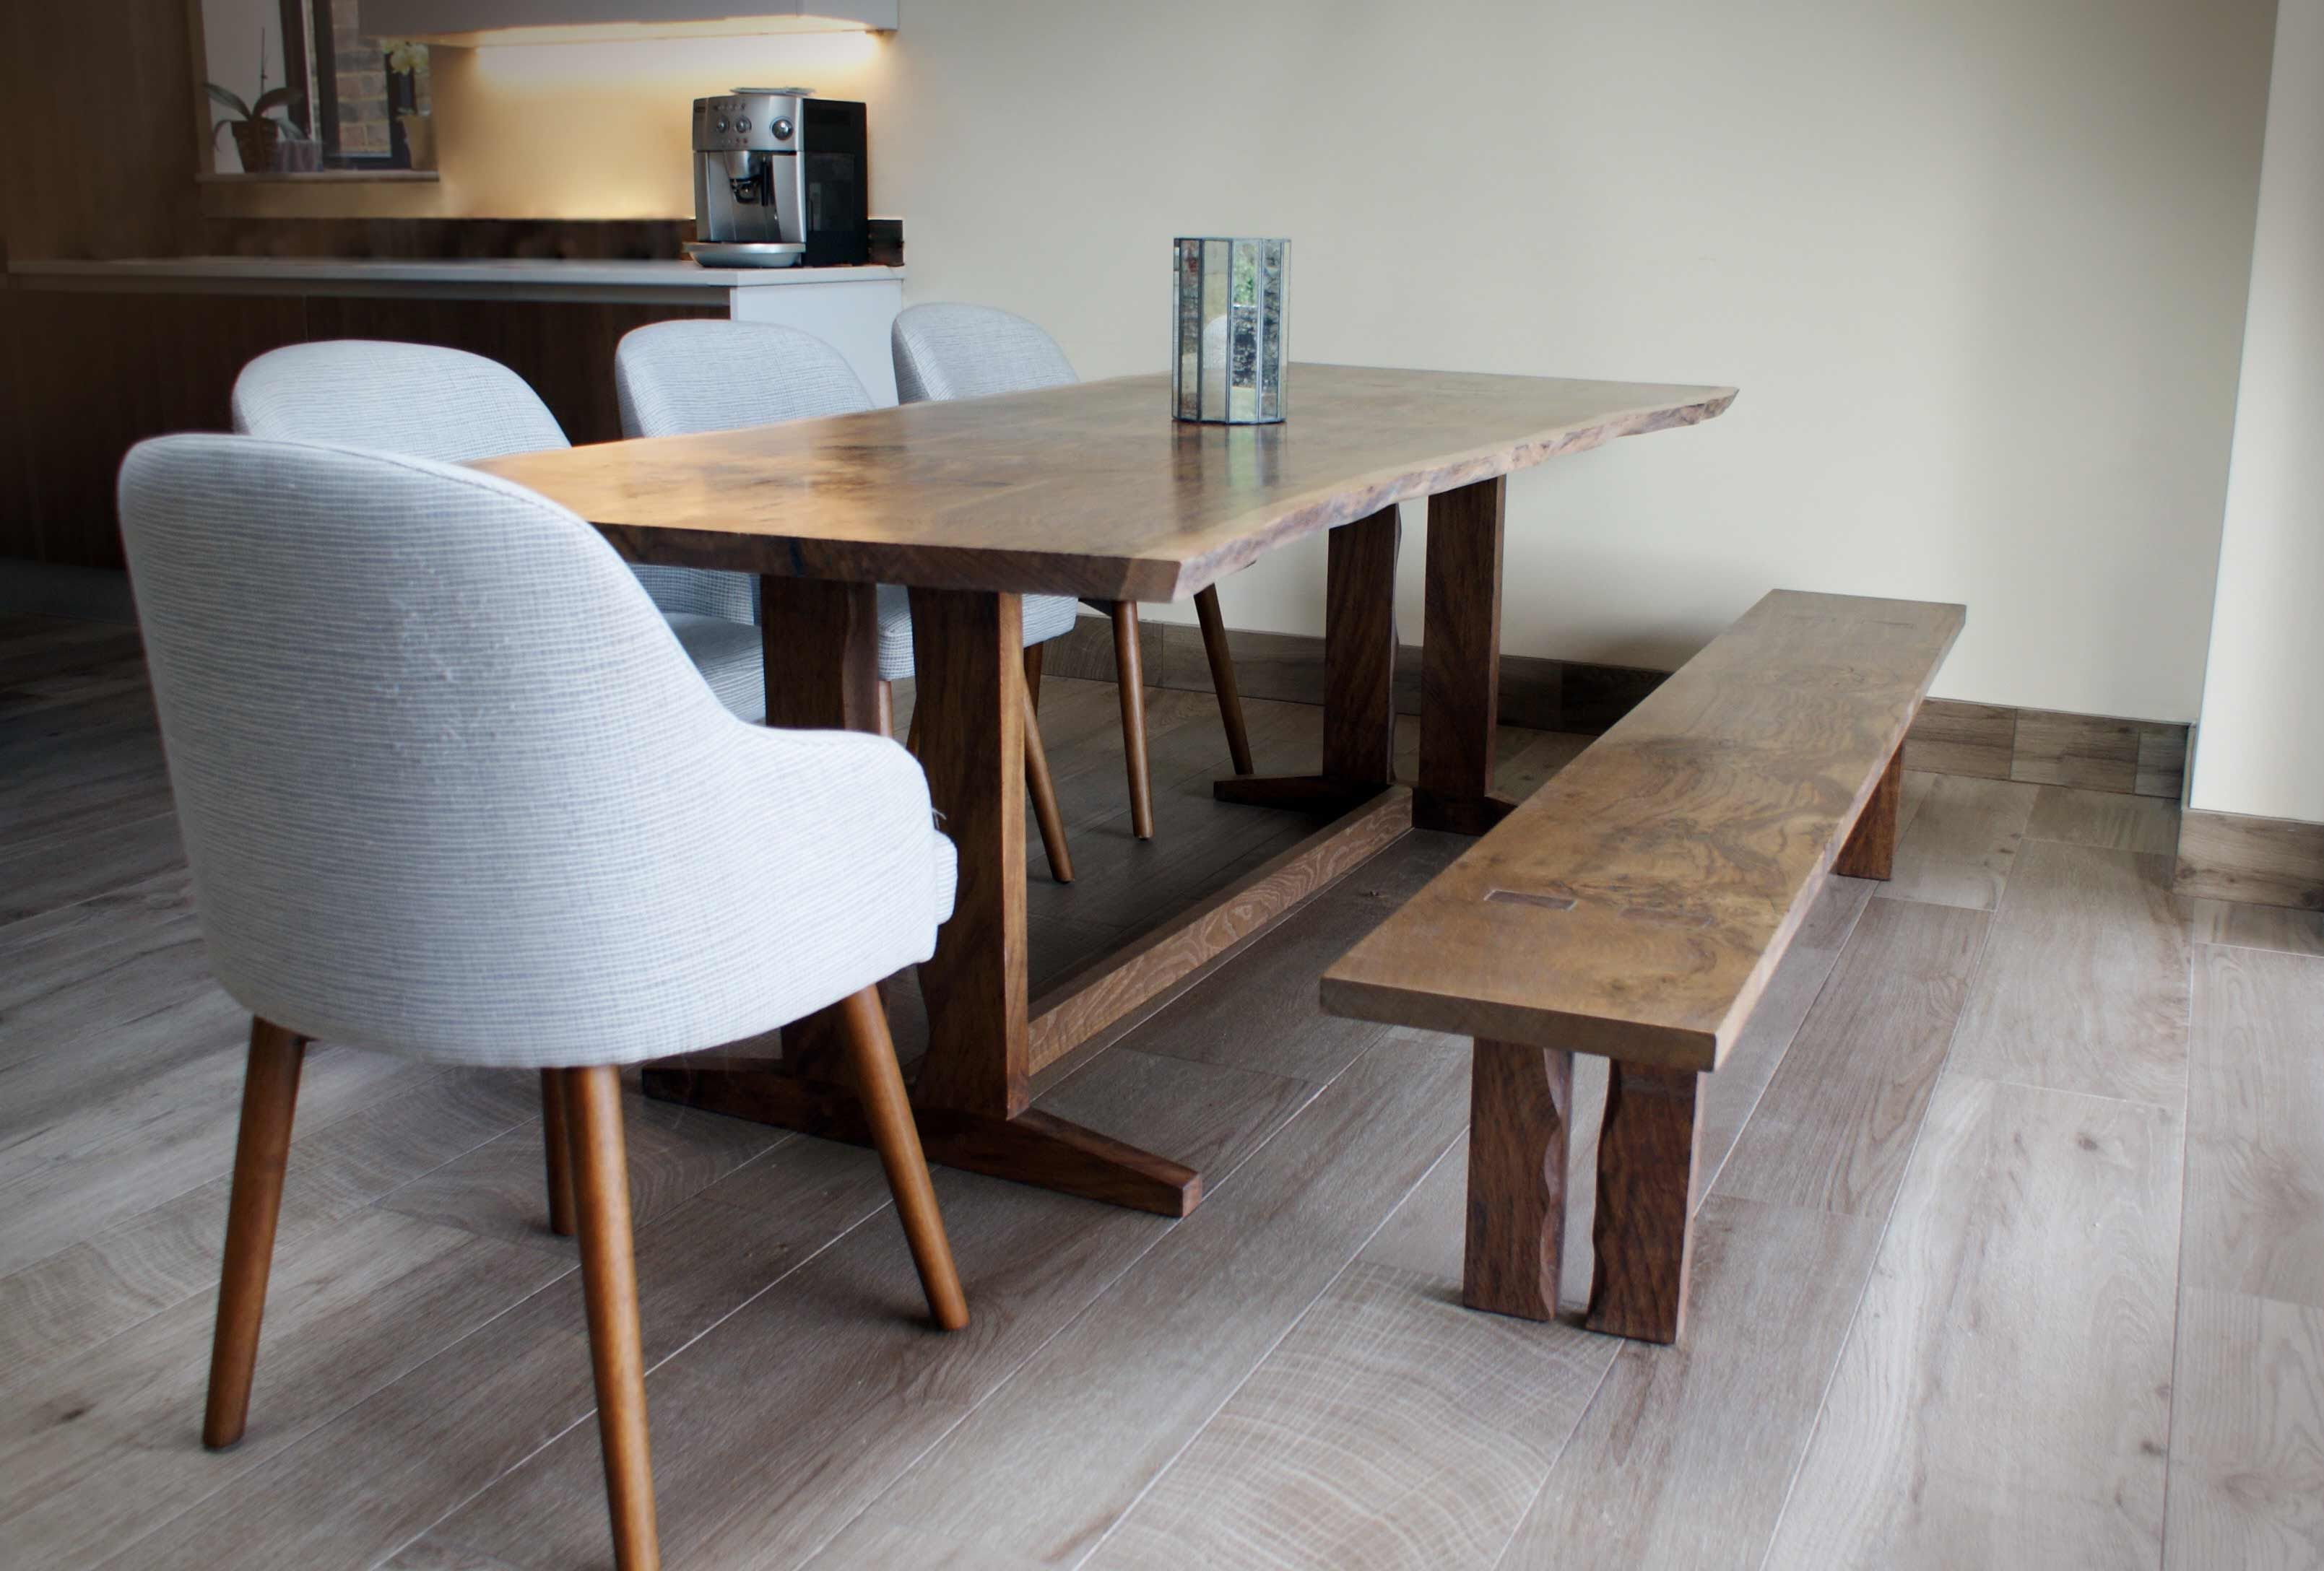 Waney Edged Dining Table In Solid Figured English Oak With Matching Bench